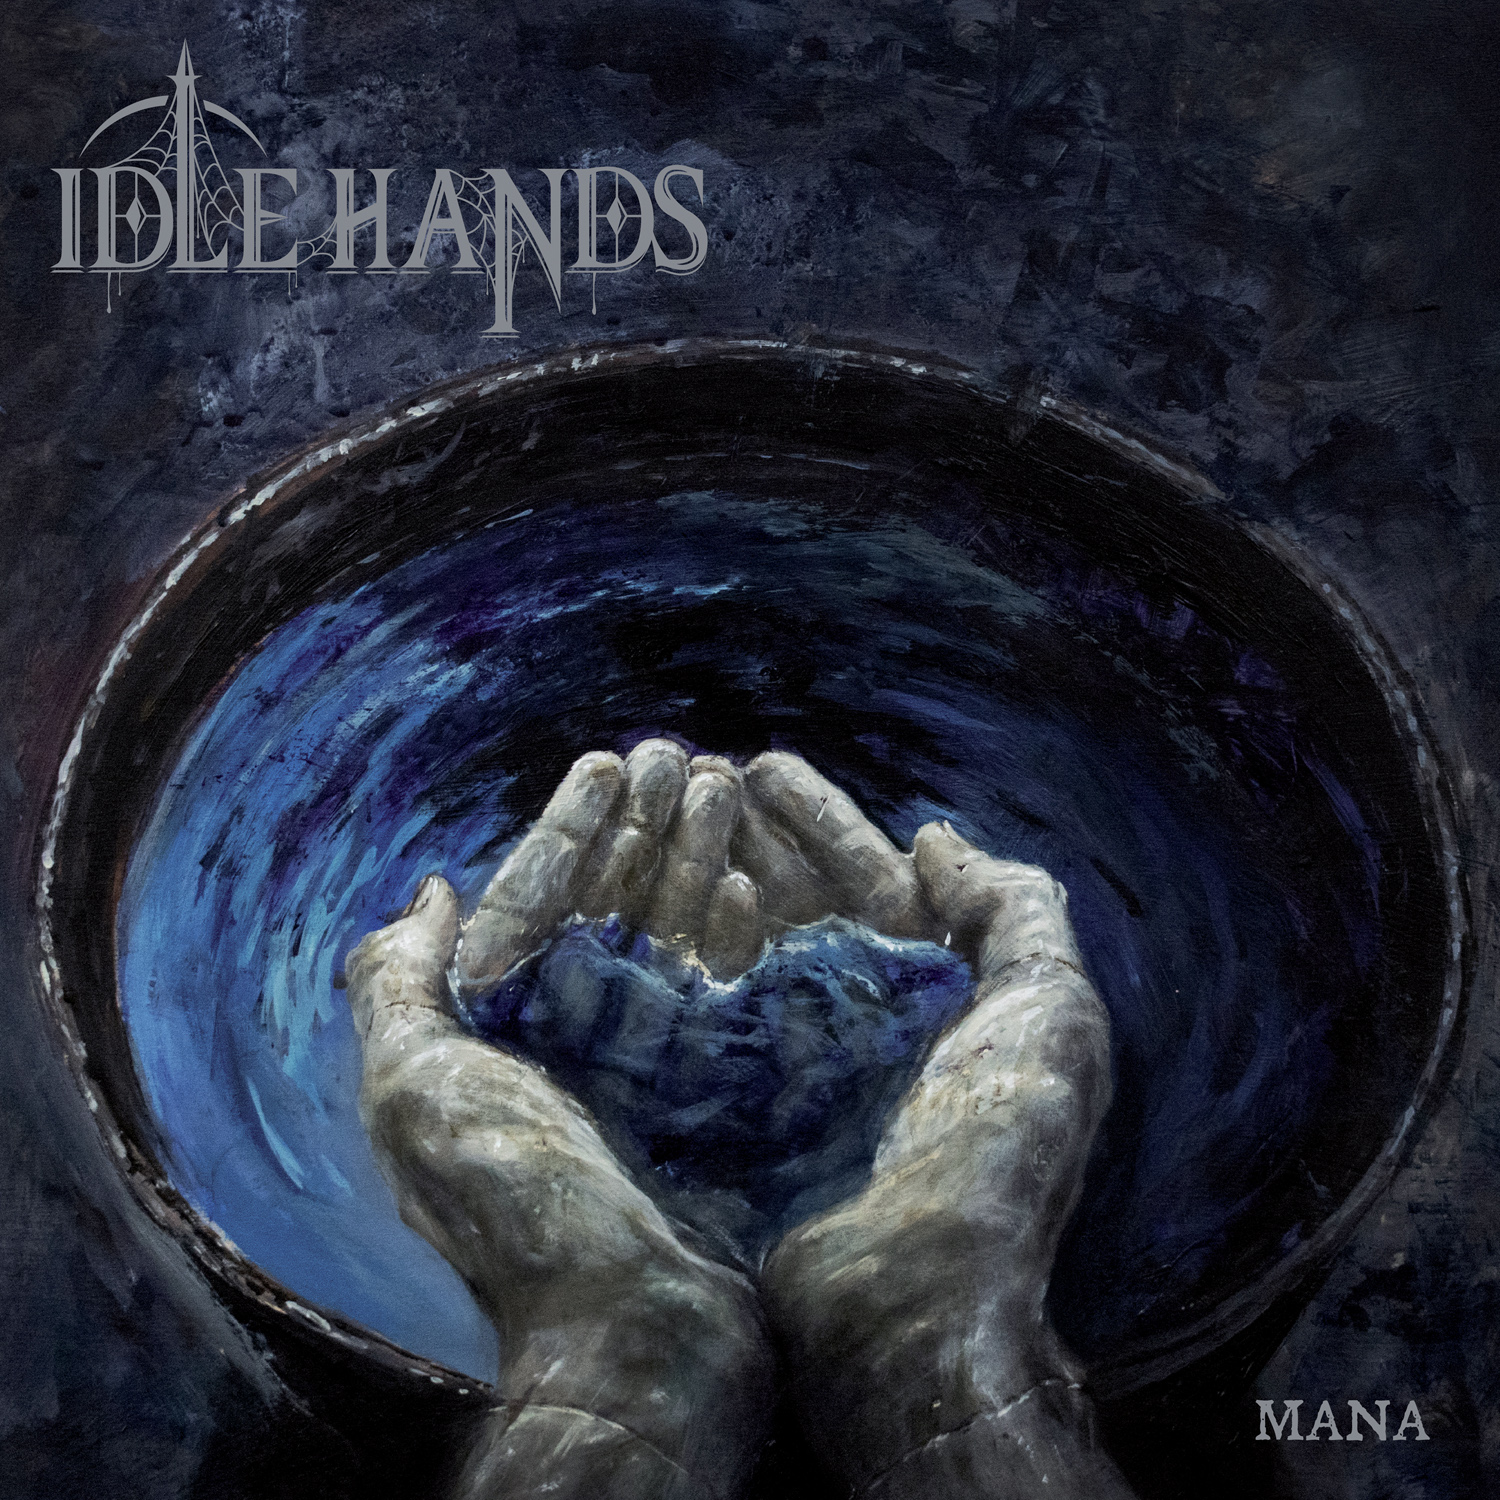 idle-hands-mana-album-preview